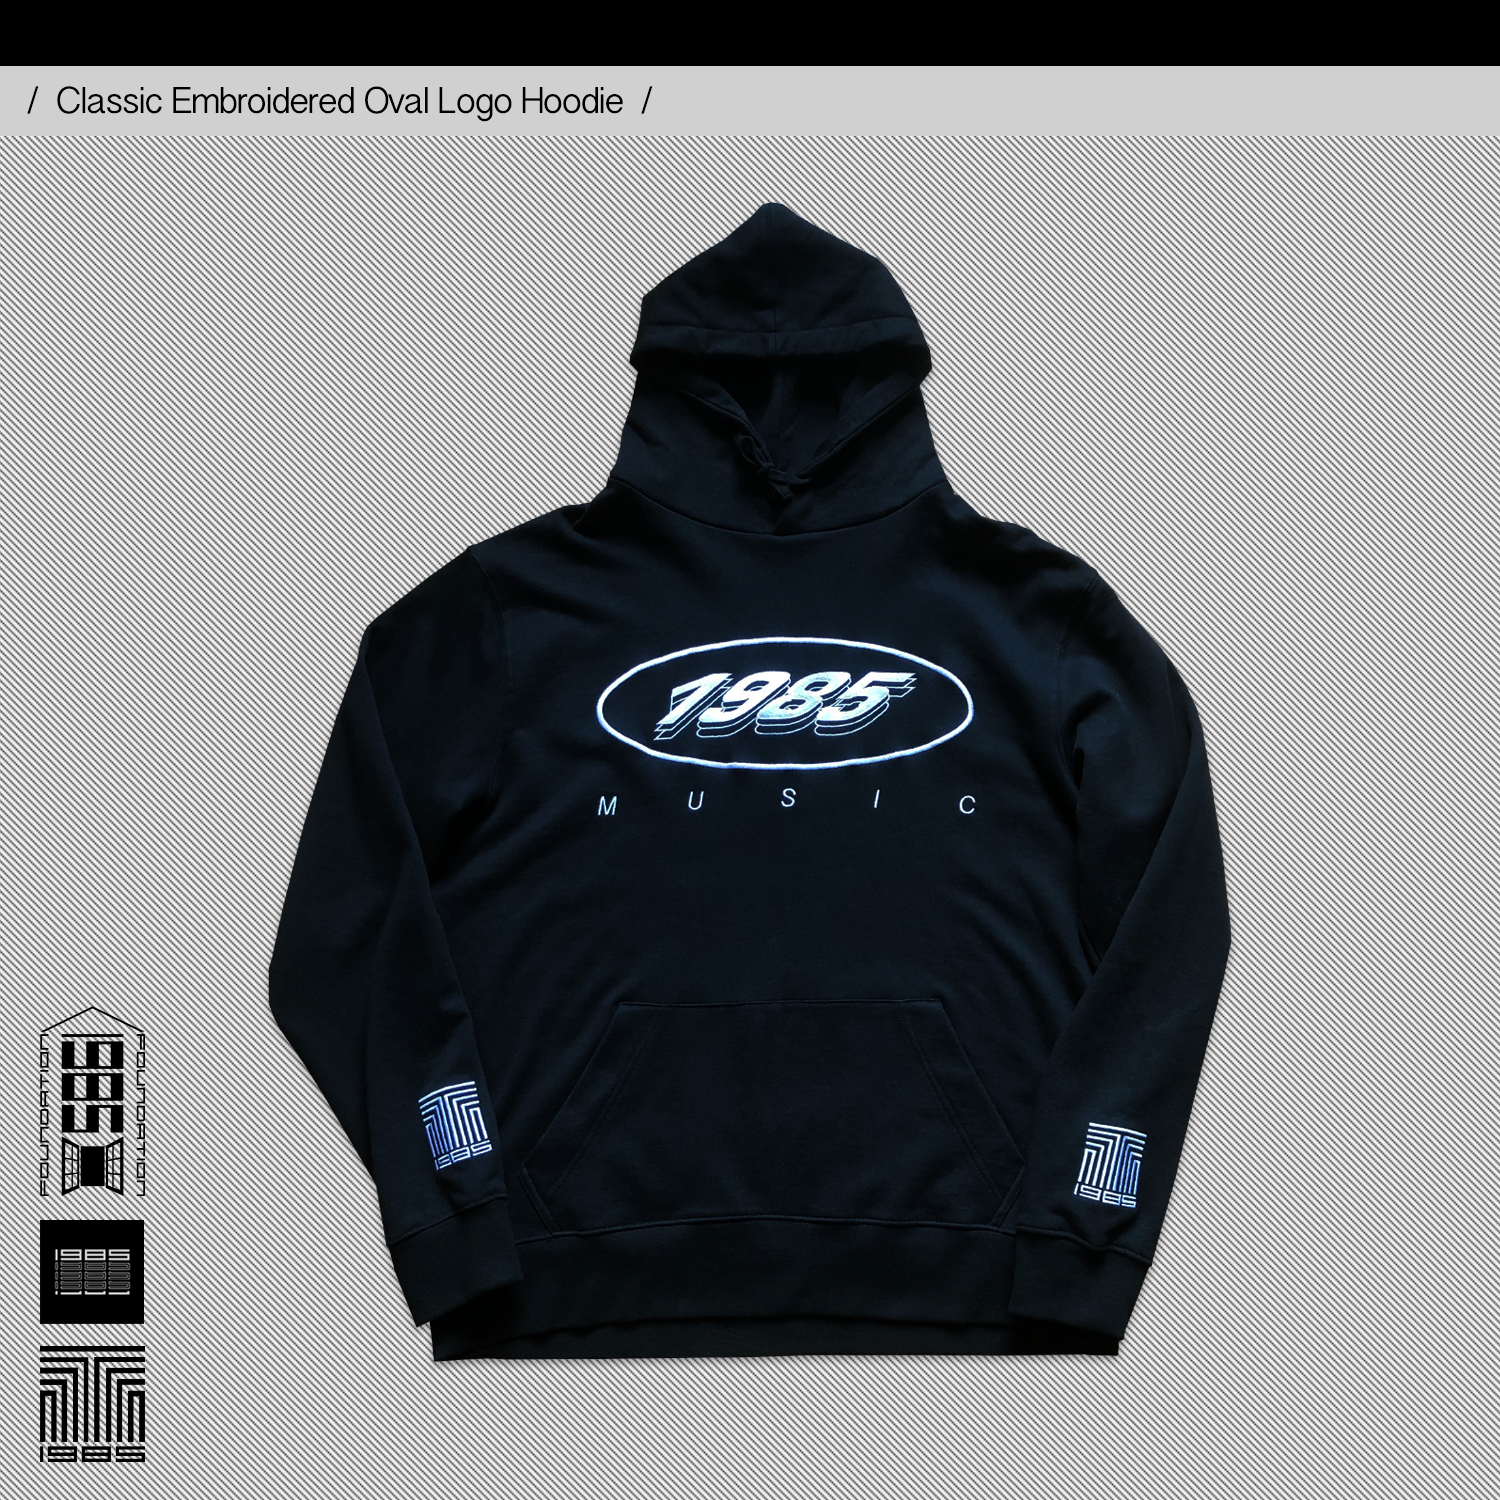 Classic Embroidered Oval Logo Hoodie